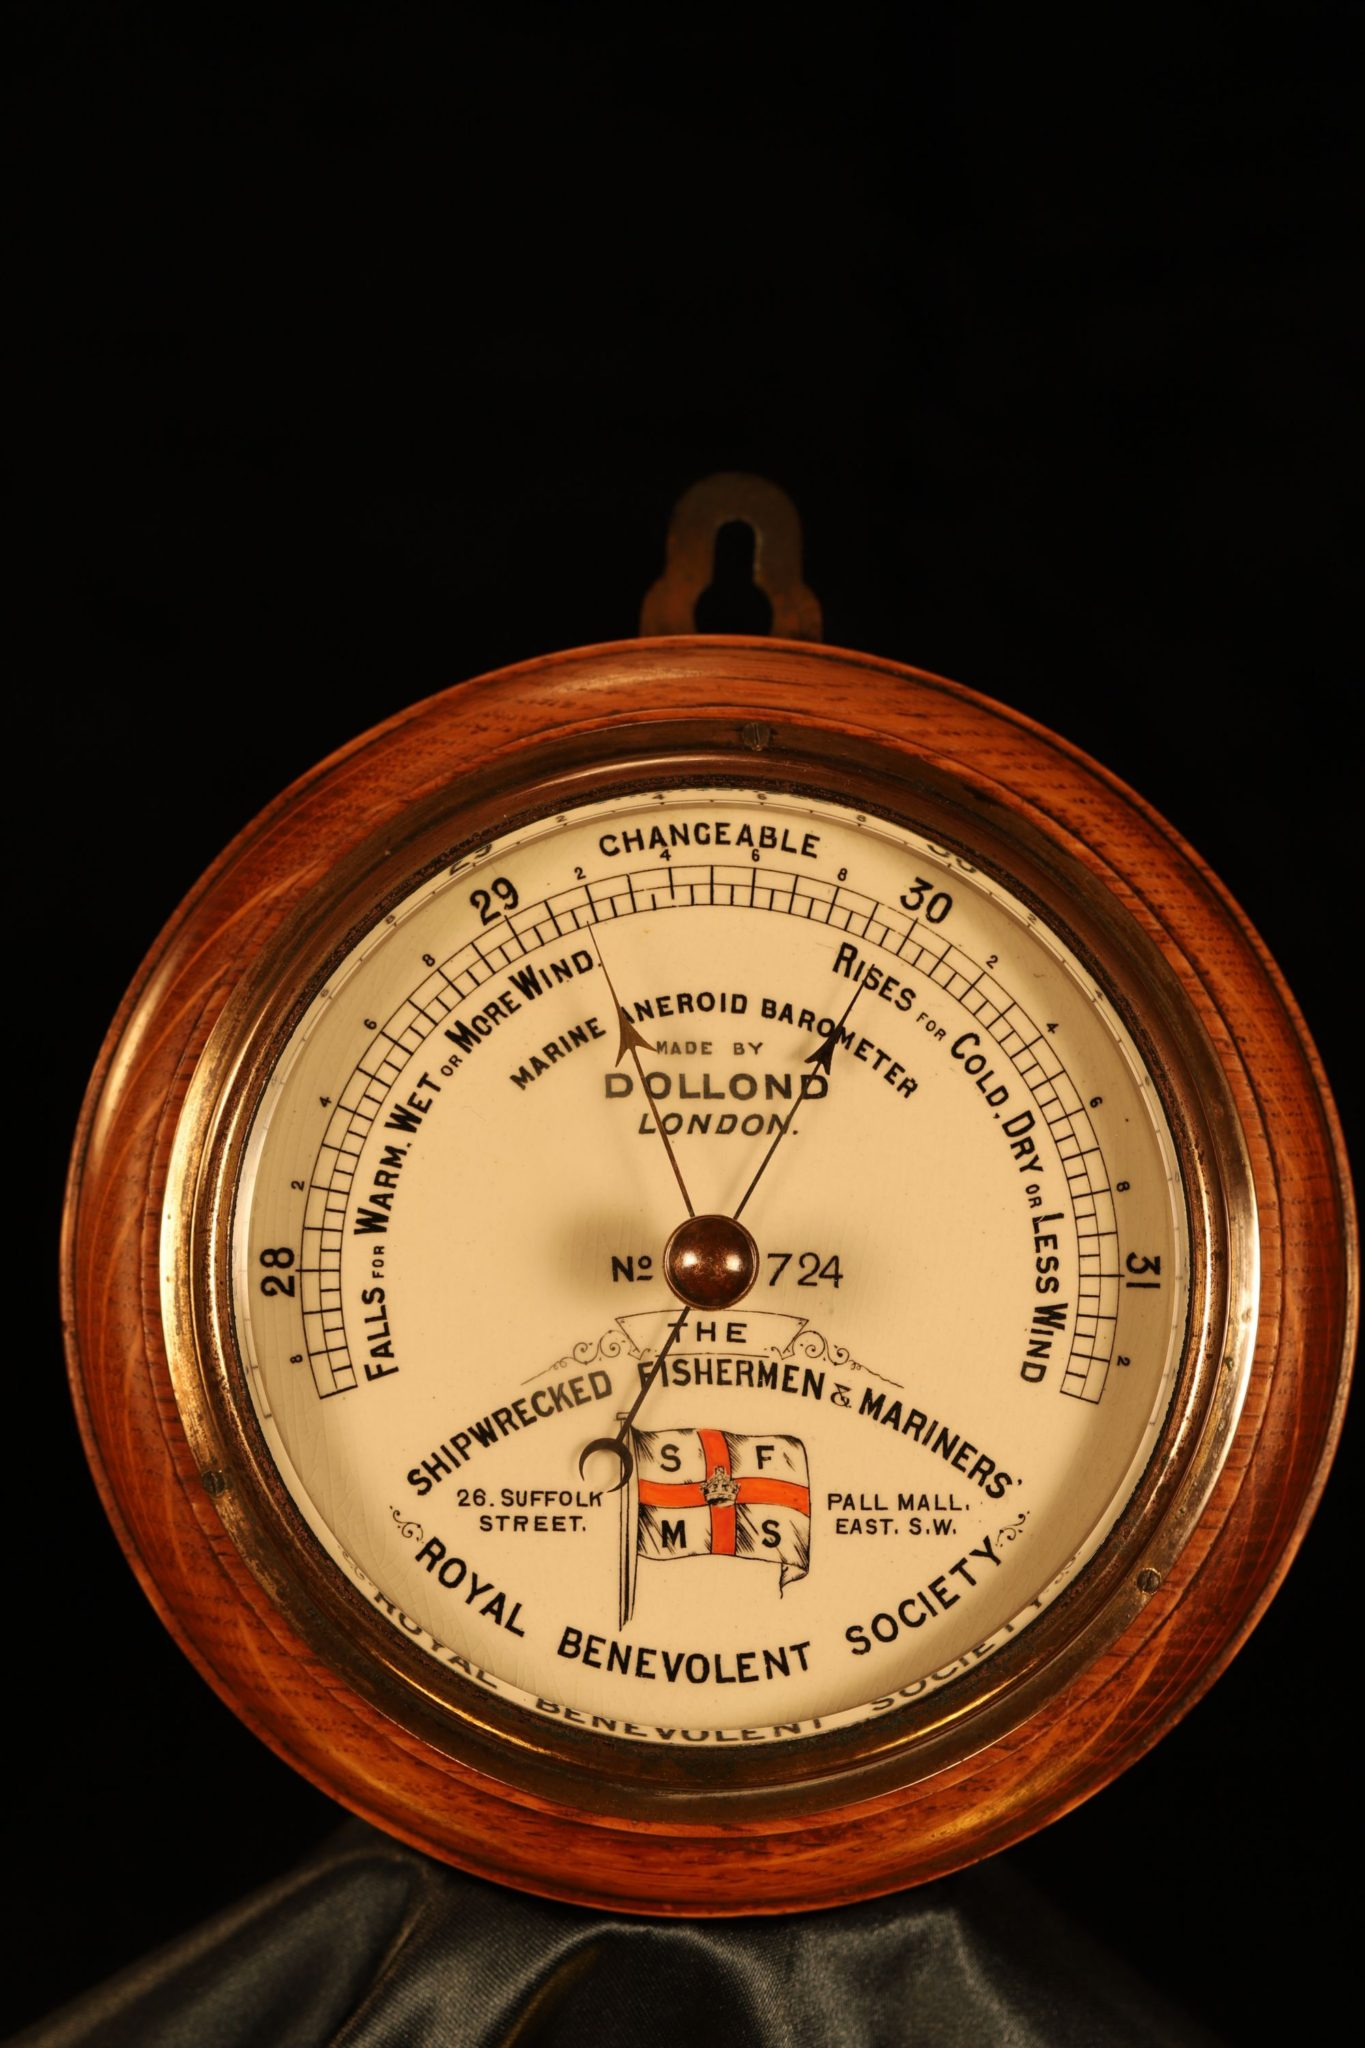 Image of Dollond Shipwrecked Fishermen & Mariners Society Marine Barometer No 724 c1900